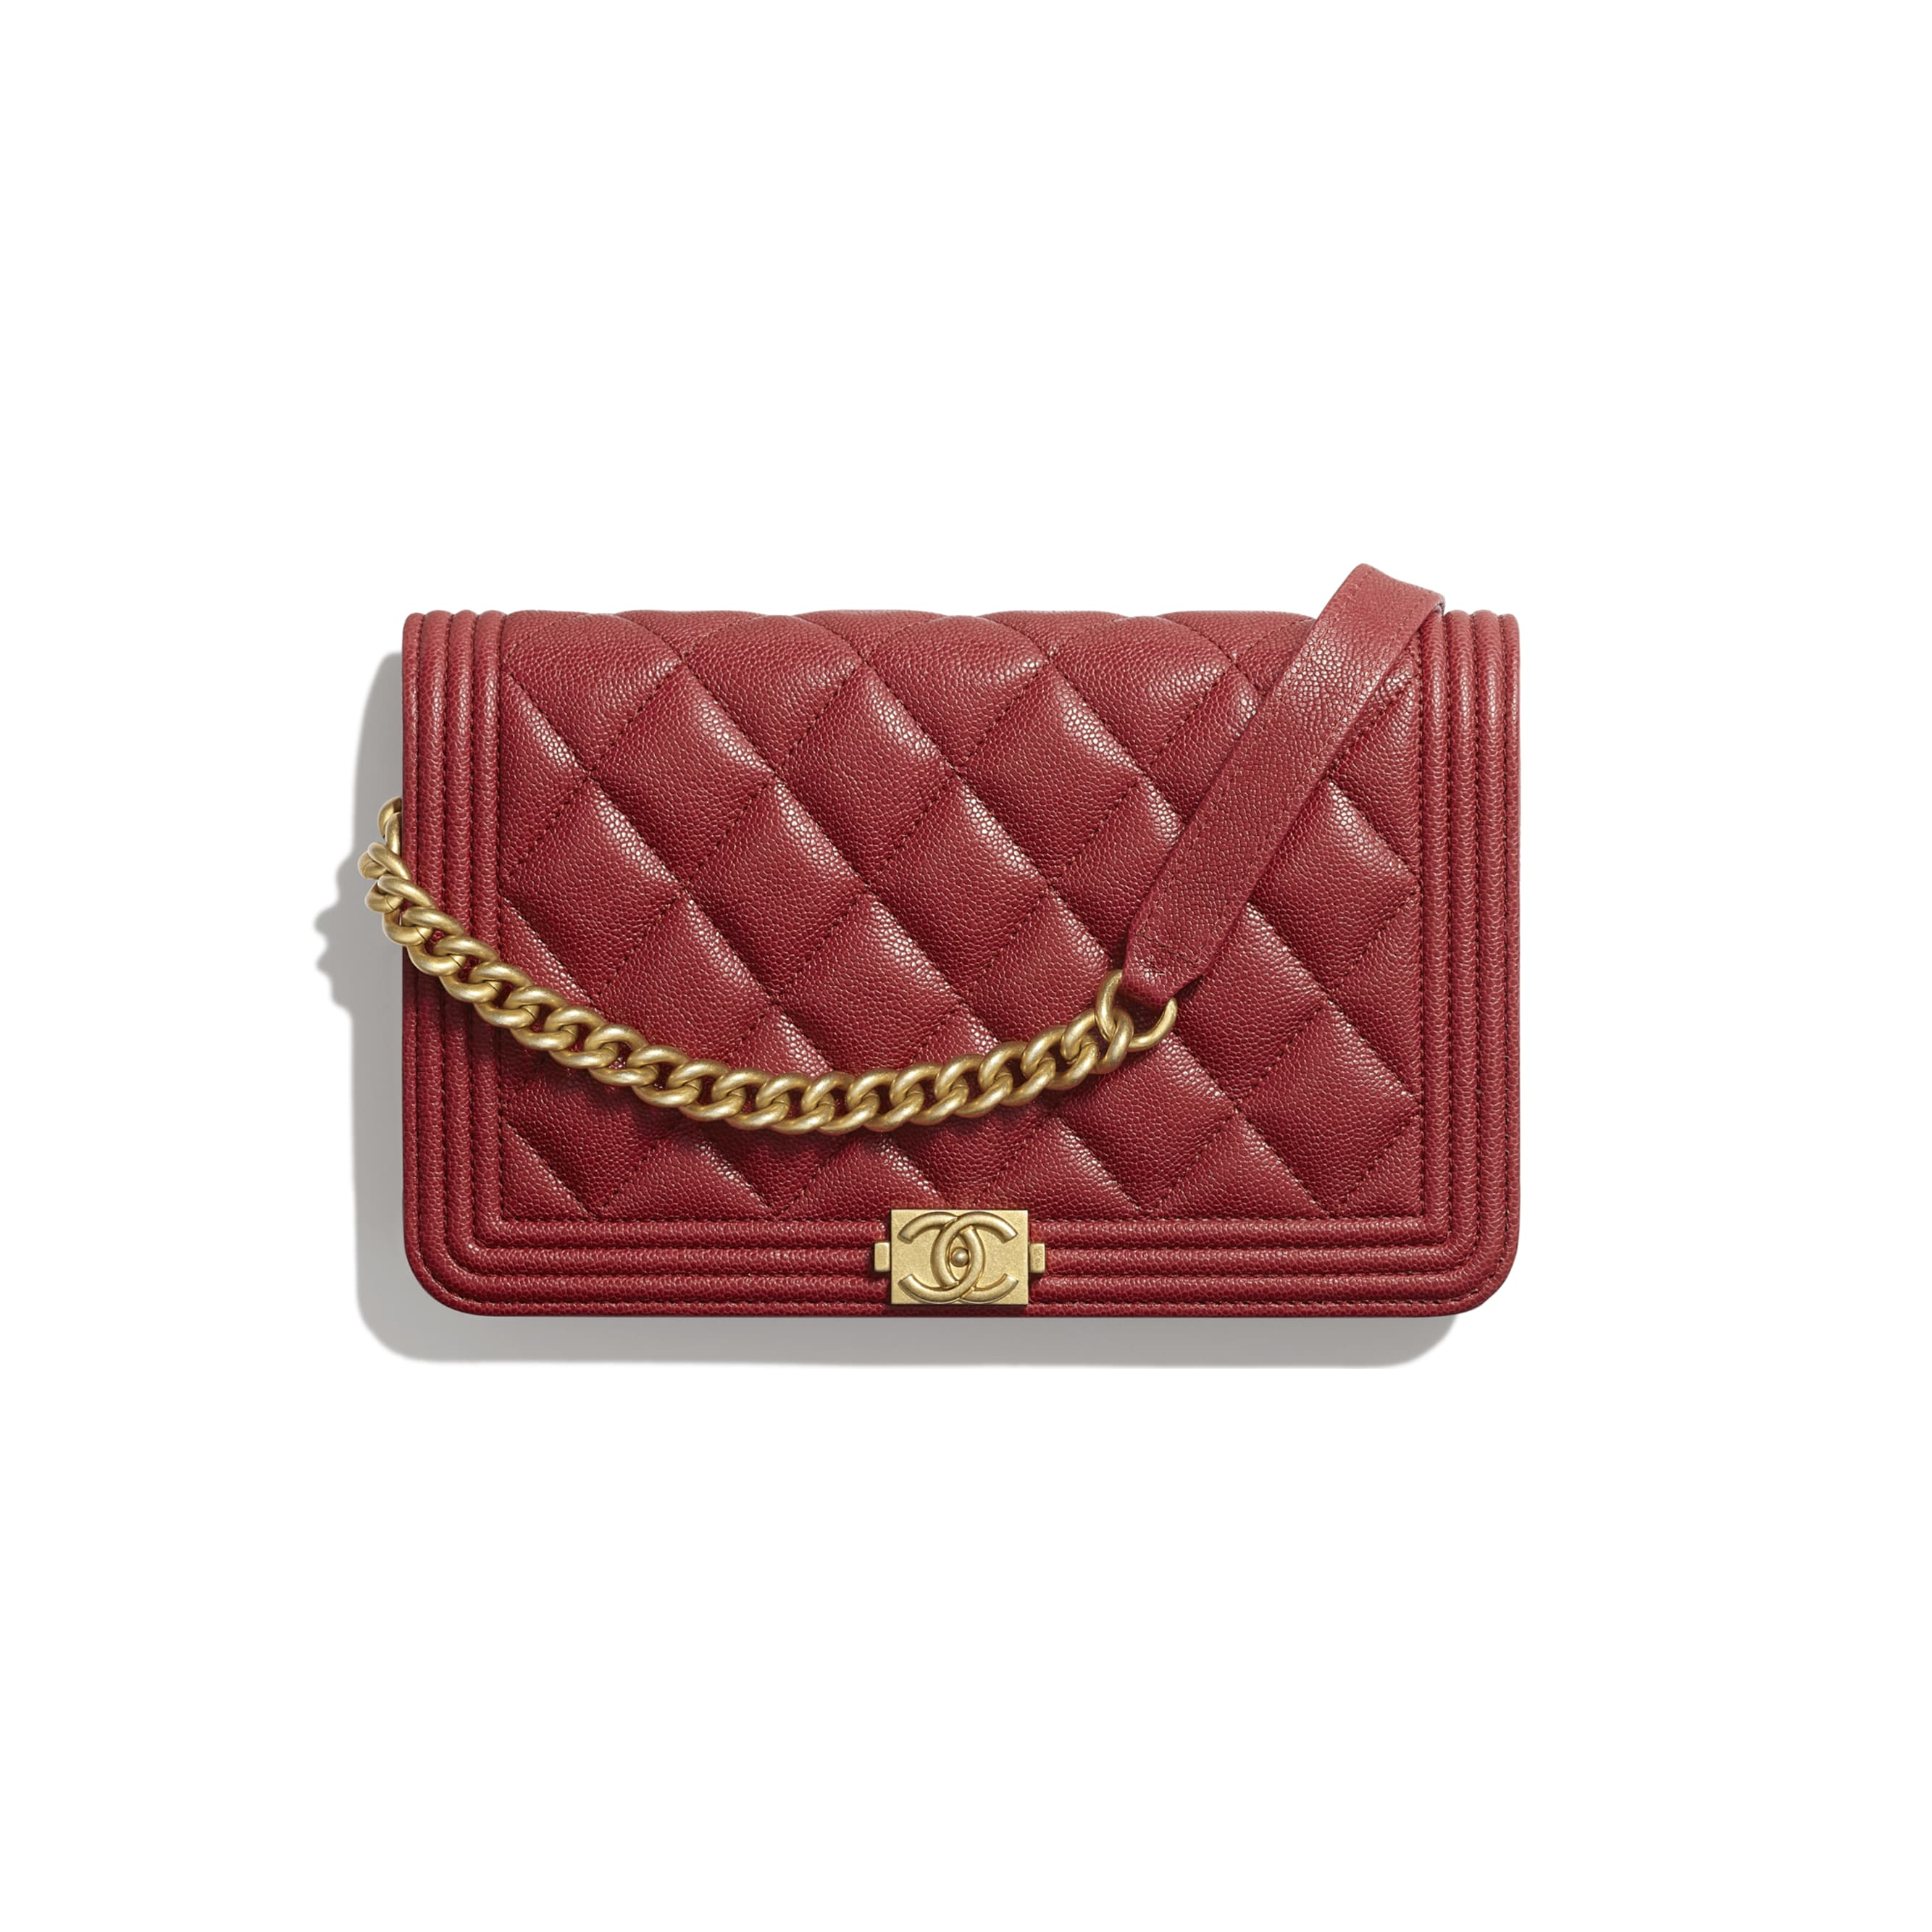 BOY CHANEL Wallet on Chain - Red - Grained Calfskin & Gold-Tone Metal - Default view - see standard sized version